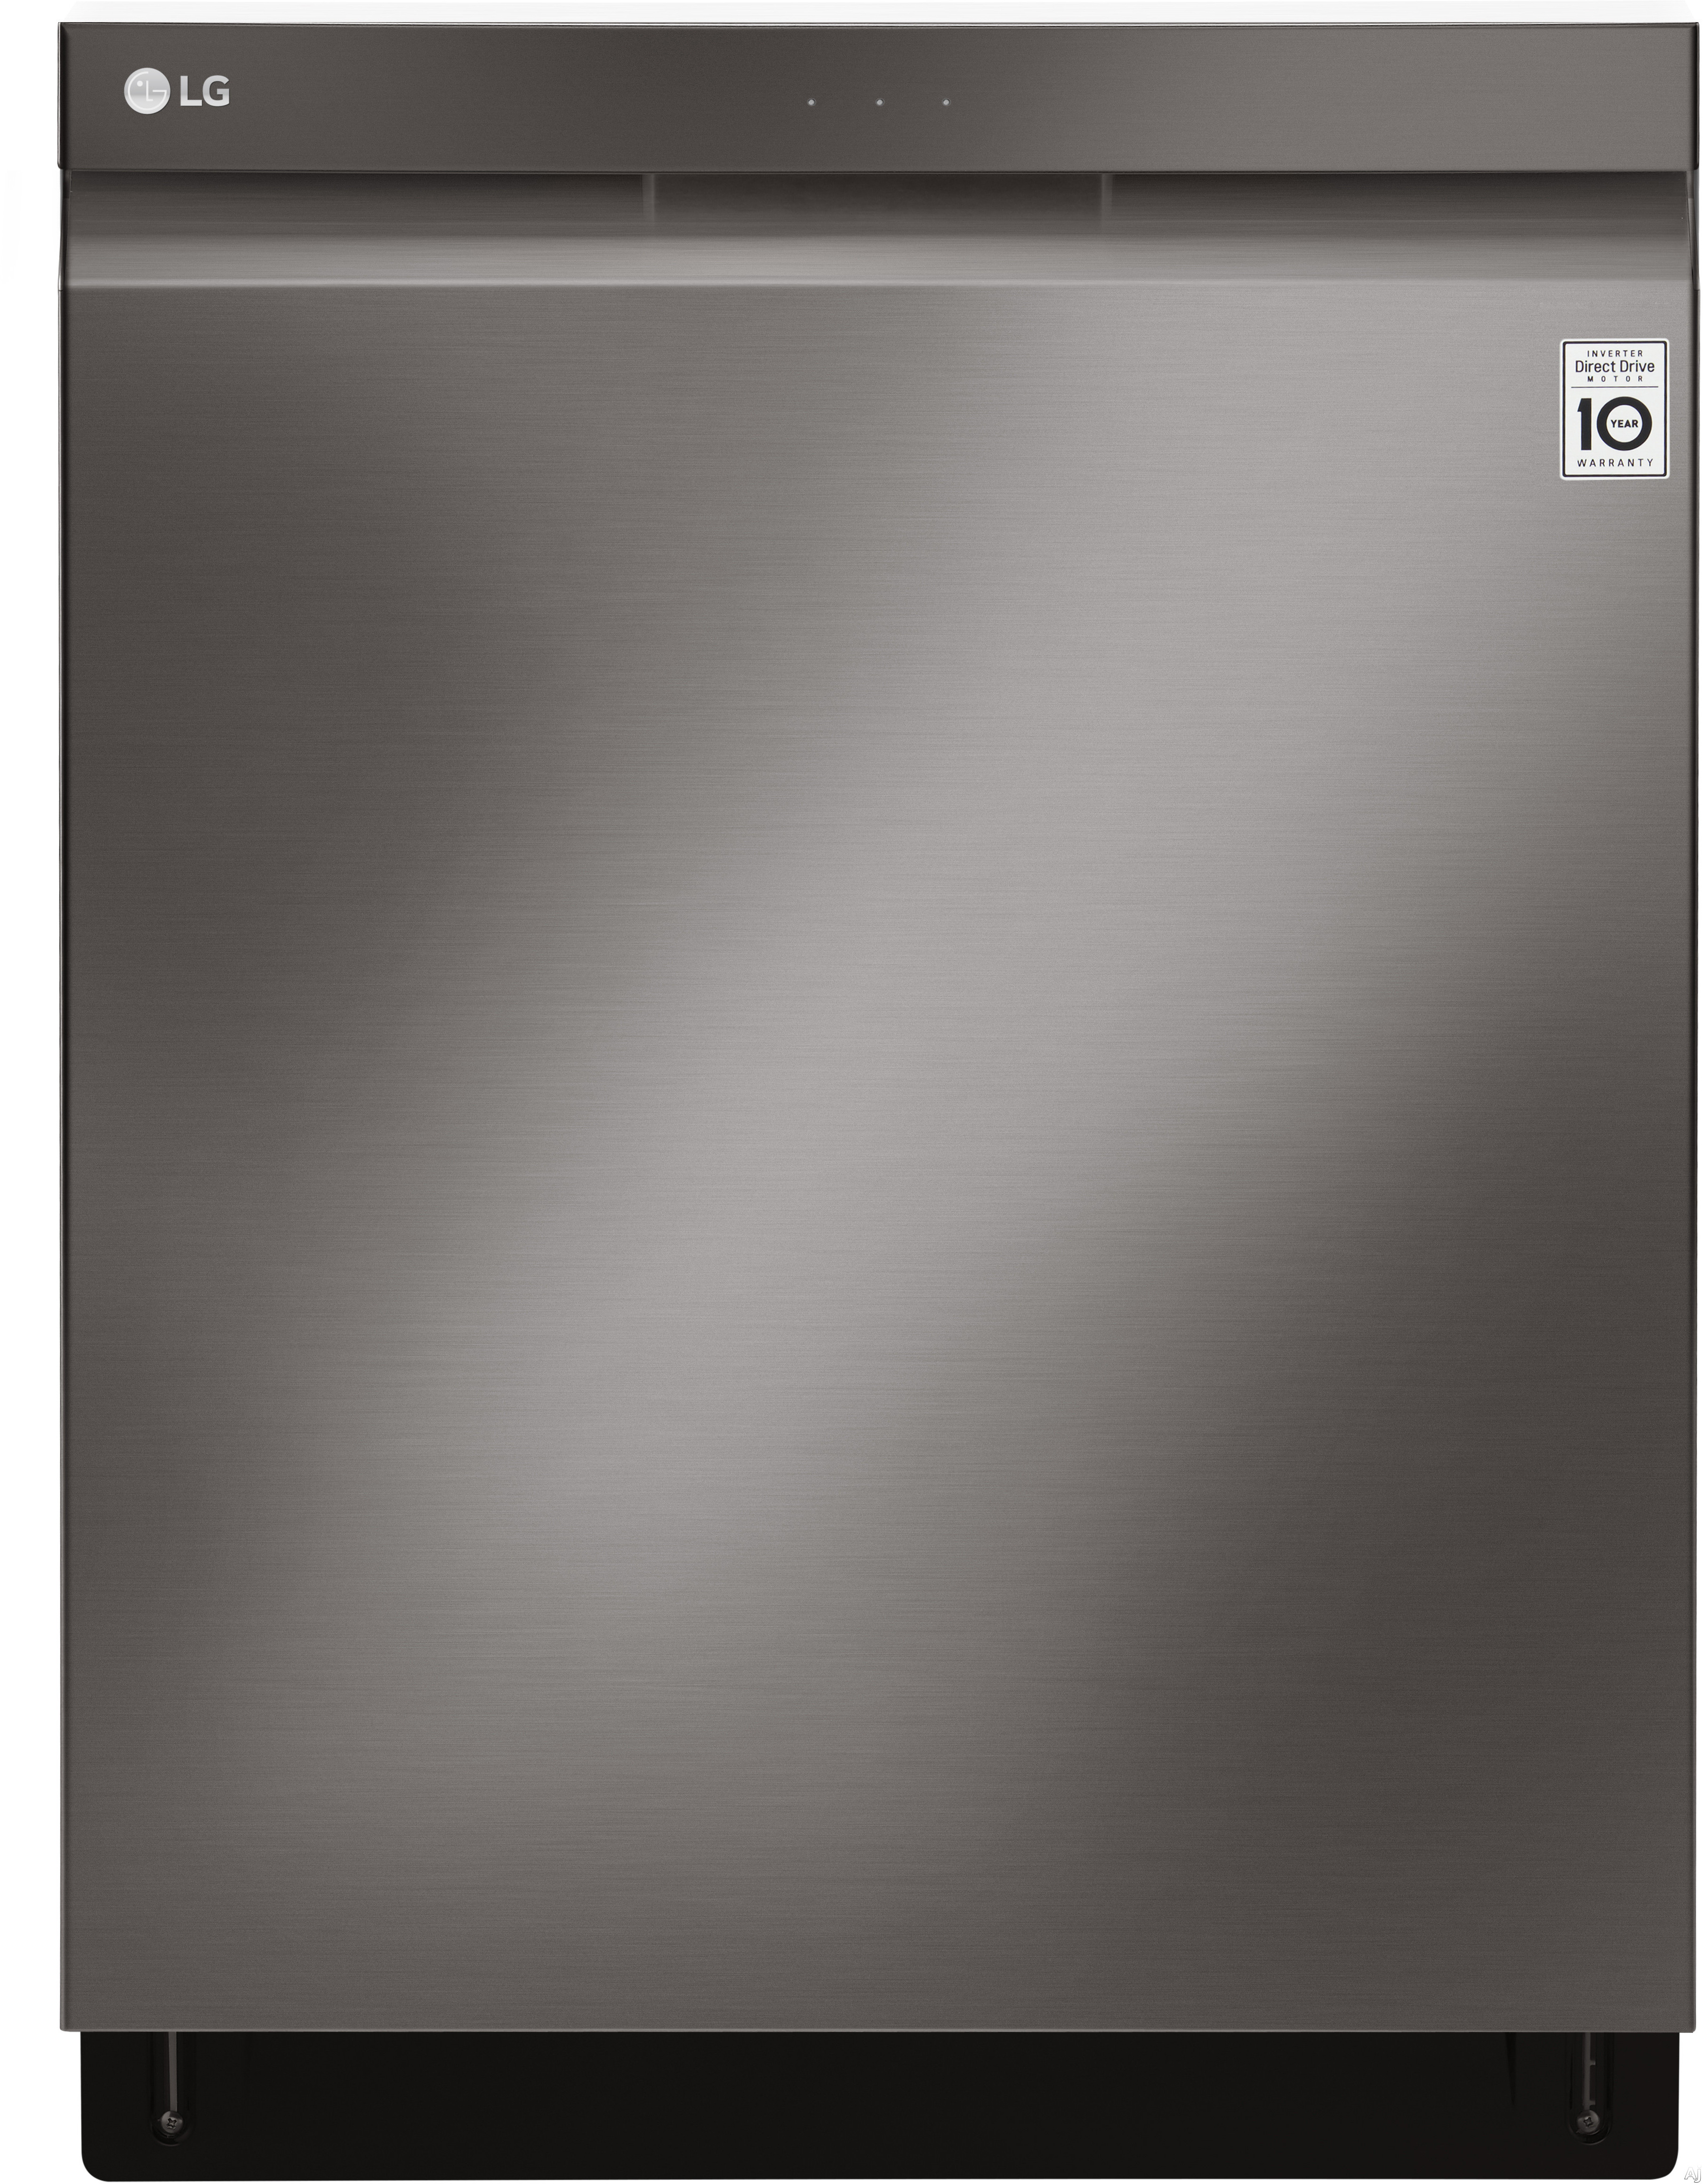 LG LDP6797 Fully Integrated QuadWash™ Dishwasher with 3rd Rack, SmartThinQ®, EasyRack™ Plus System, Dual Zone Wash, 15 Place Settings, 9 Wash Cycles, Glide Rail, SmoothTouch™ Controls, NeveRust™ Stainless Steel Tub and Inverter Direct Drive Mot